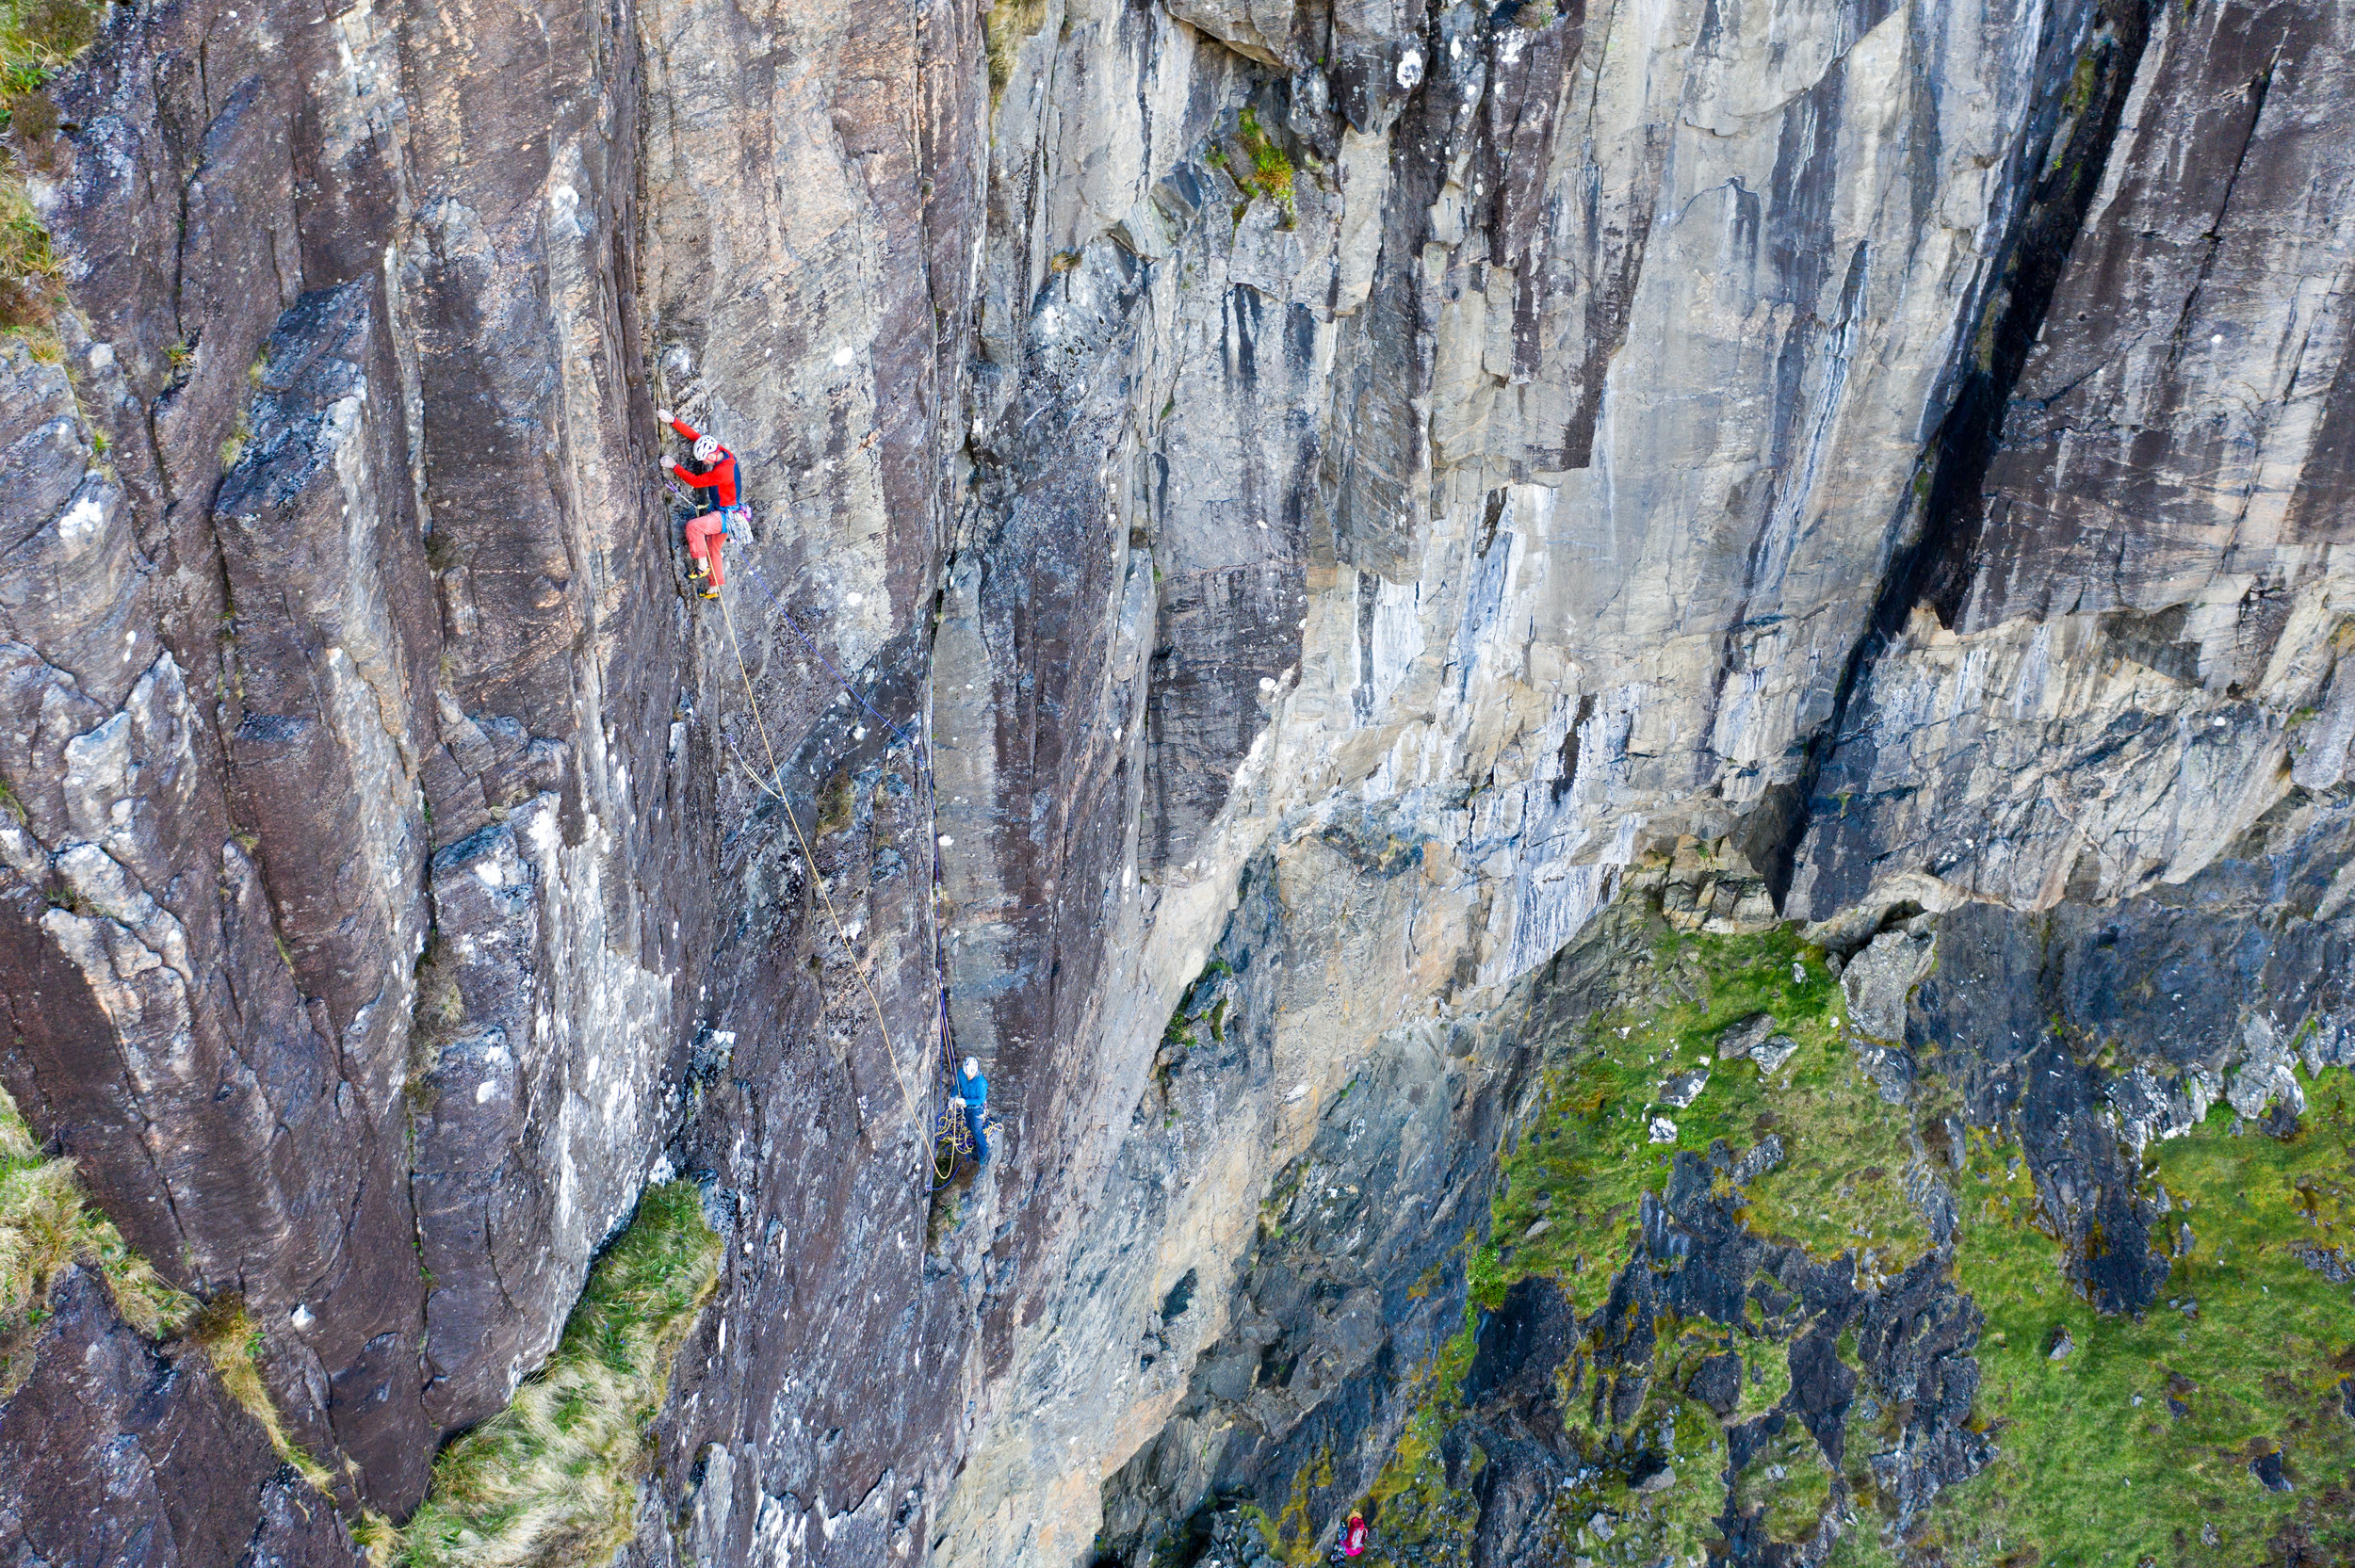 Myself and Keita on the FA of From The Depths E6 6c, 5c. Another top quality new route we added to this cliff.